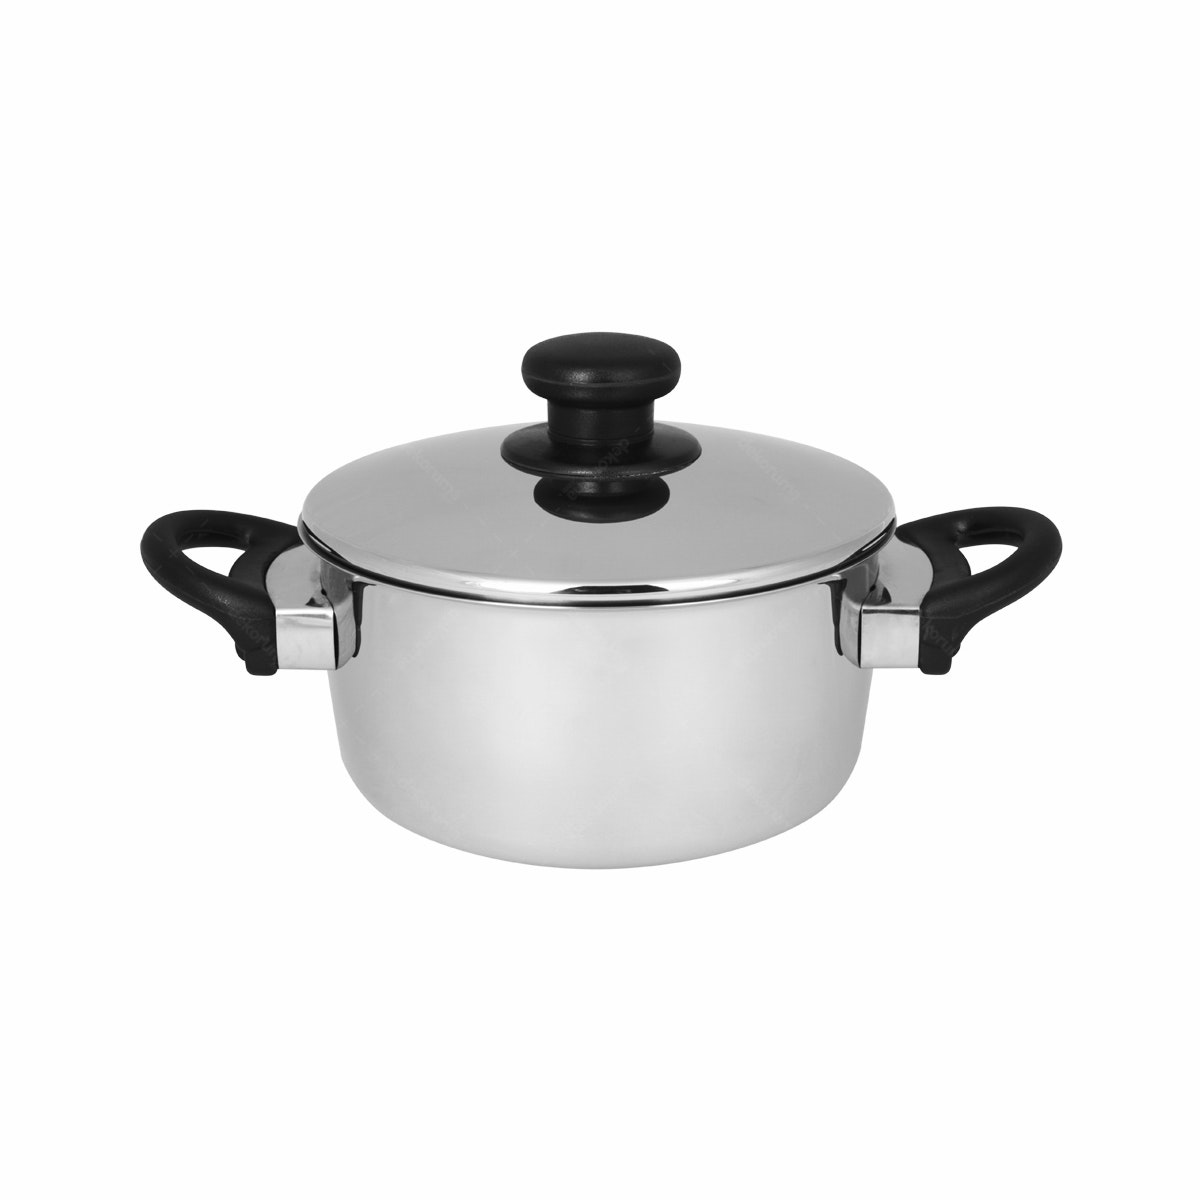 Master Chef Stainless Dutchoven 16cm Tutup Stainless